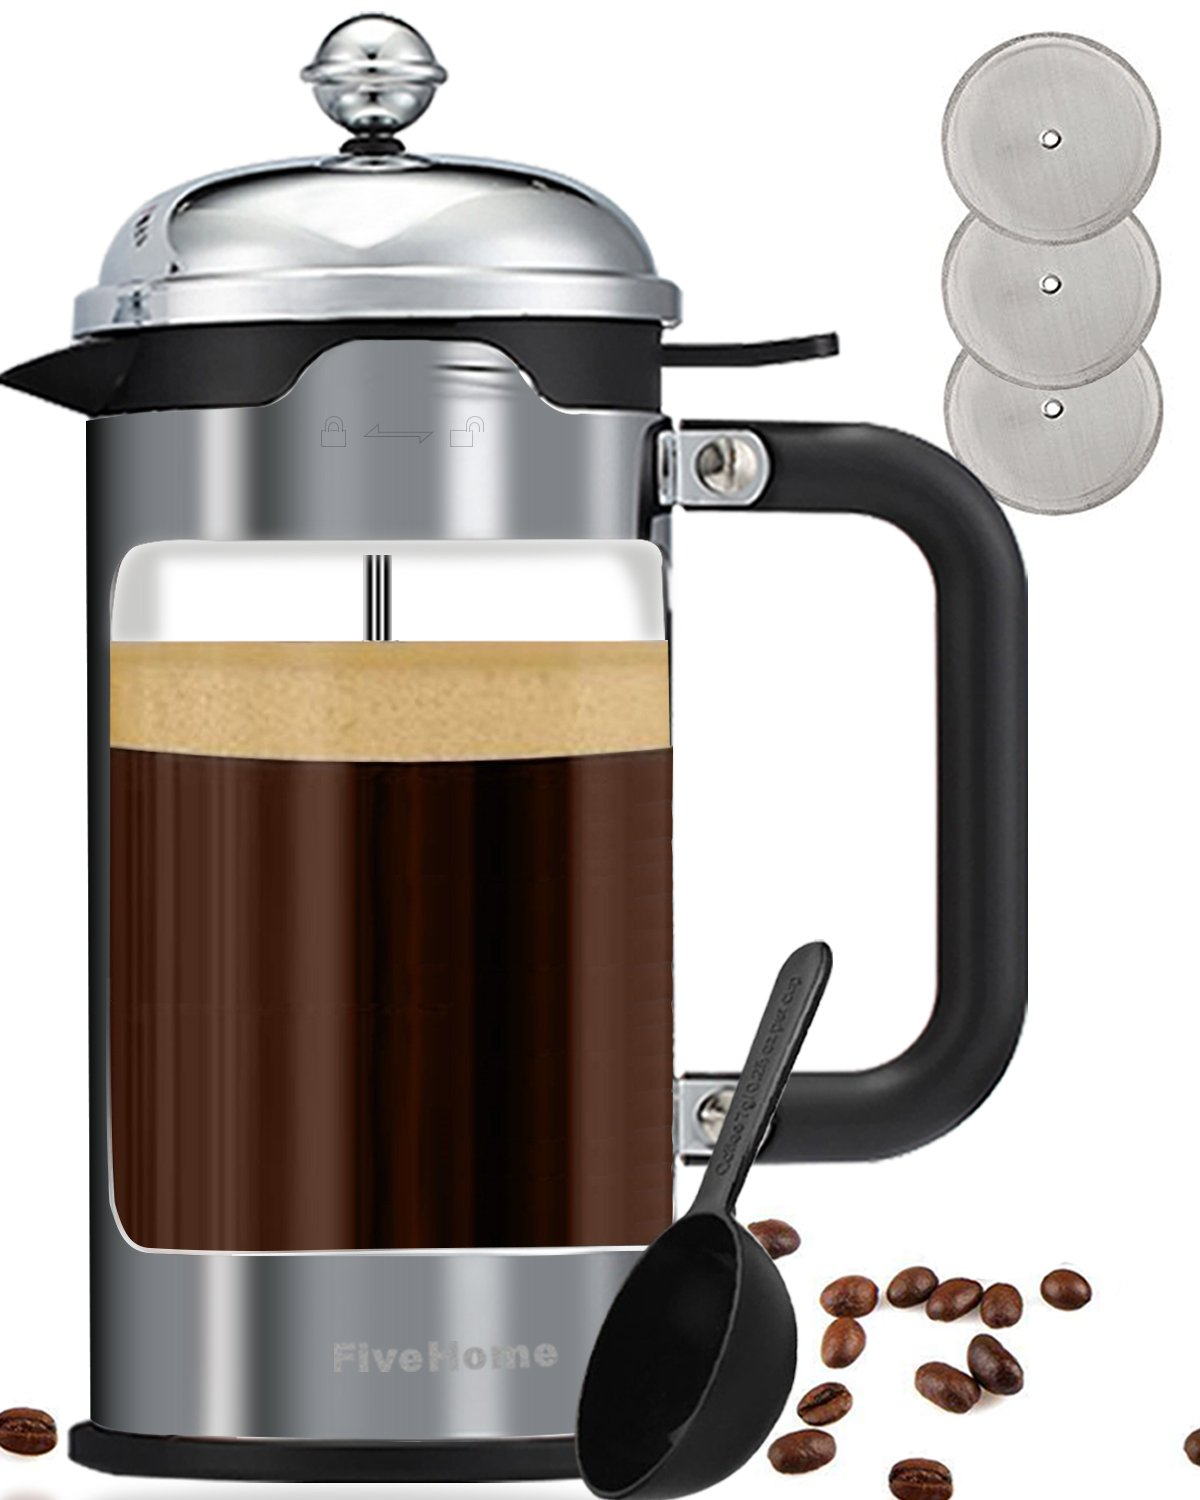 French Press Coffee Maker (8 Cup /34 Oz), FiveHome Luxury Coffee & Tea Makers with 304 Grade Stainless Steel- Heat Resistant Glass